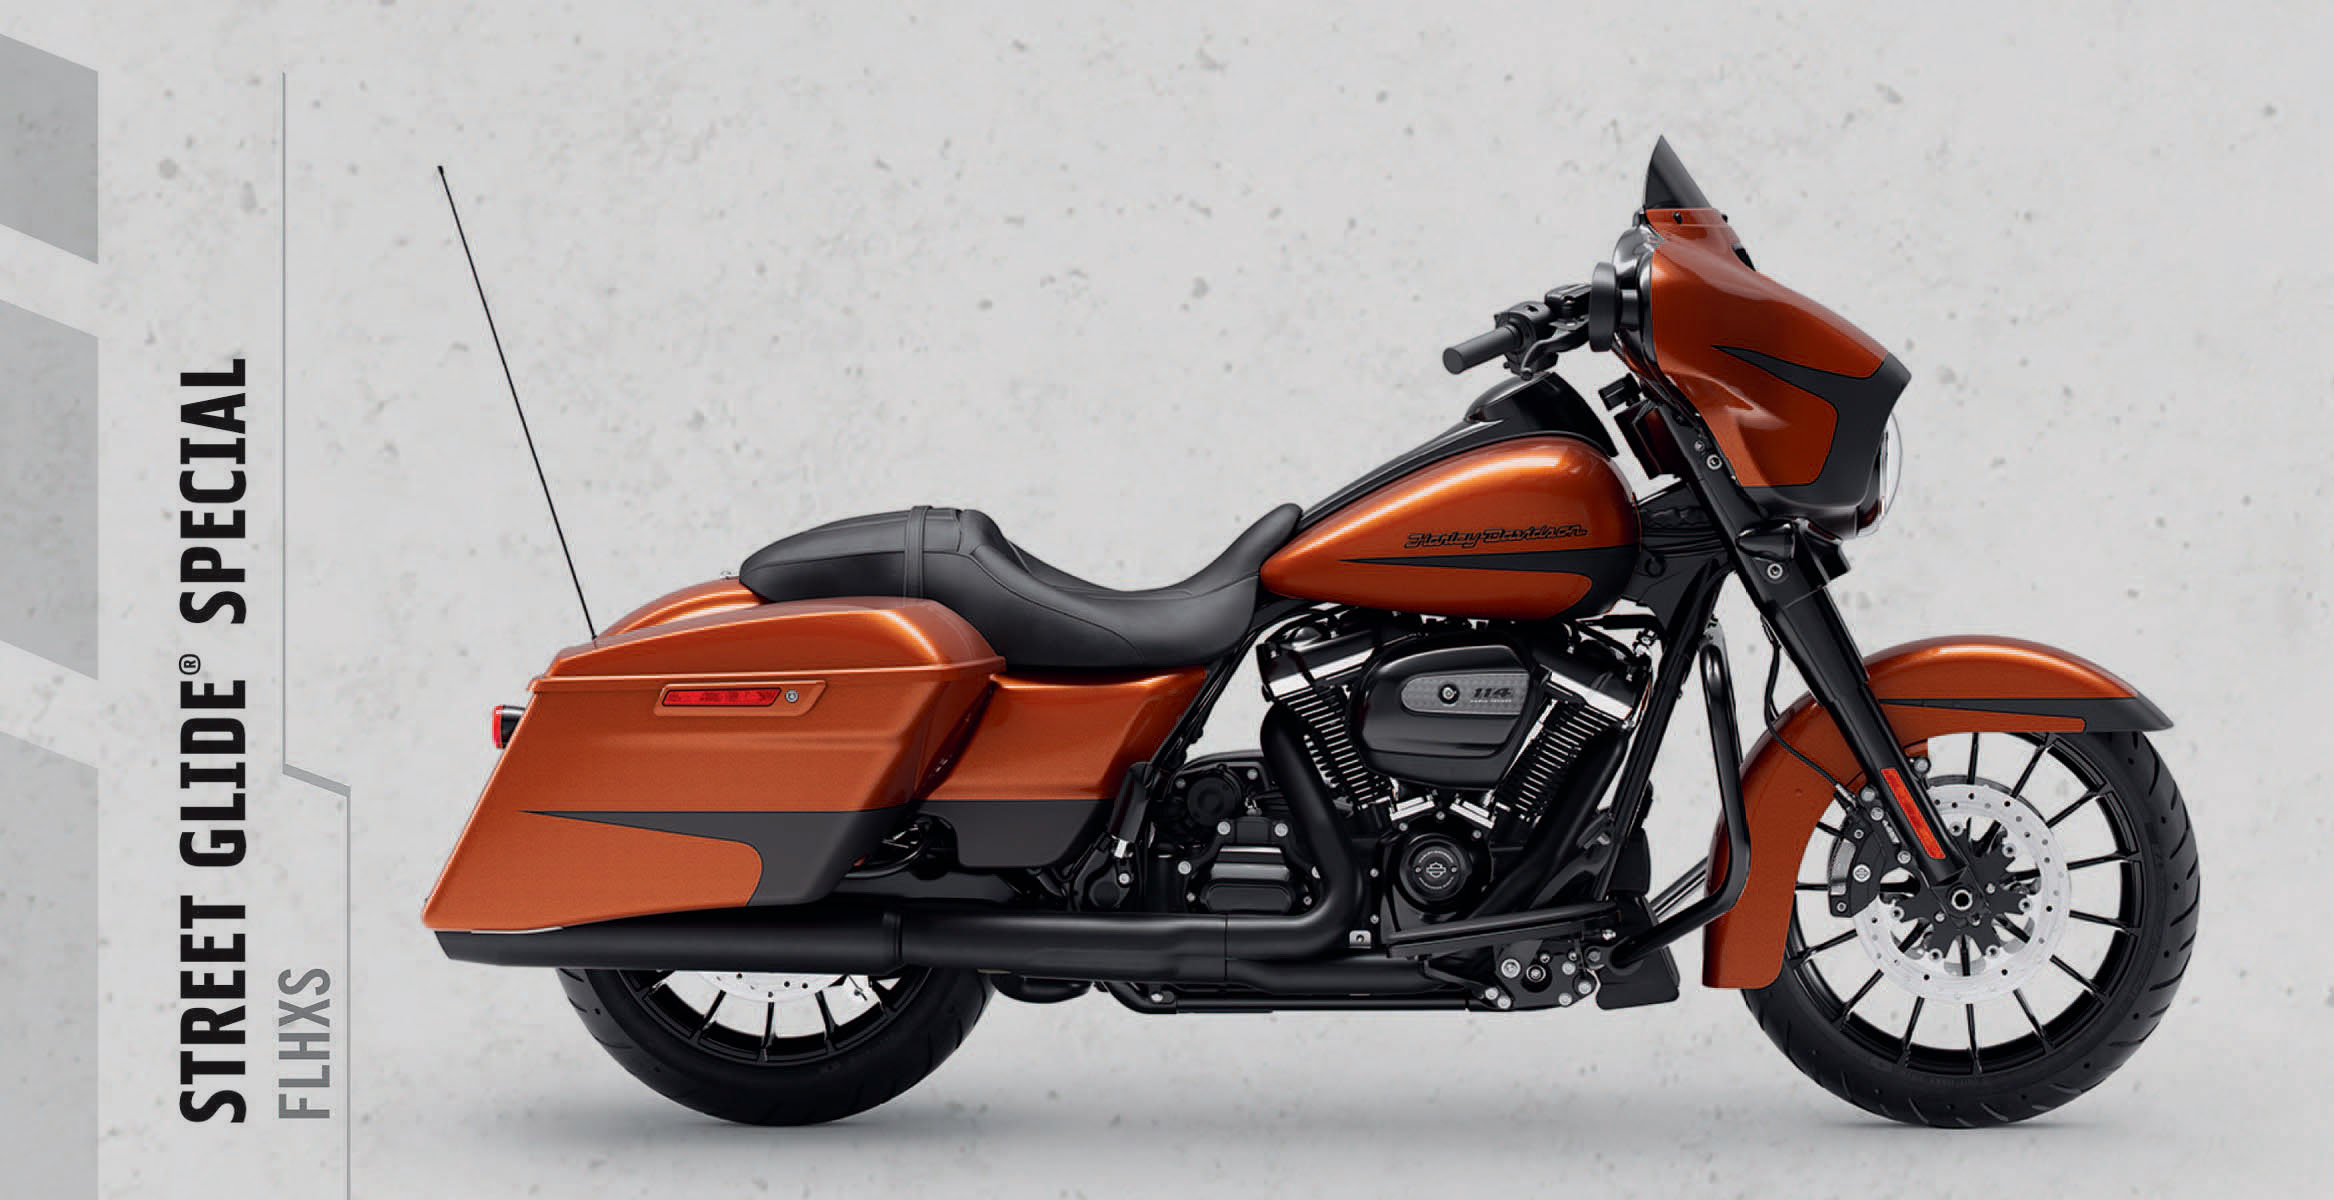 Street Glide® Special   The custom hot rod bagger look stops people in their tracks. Now powered up with the Milwaukee-Eight® 114 engine, you'll leave them in your dust.